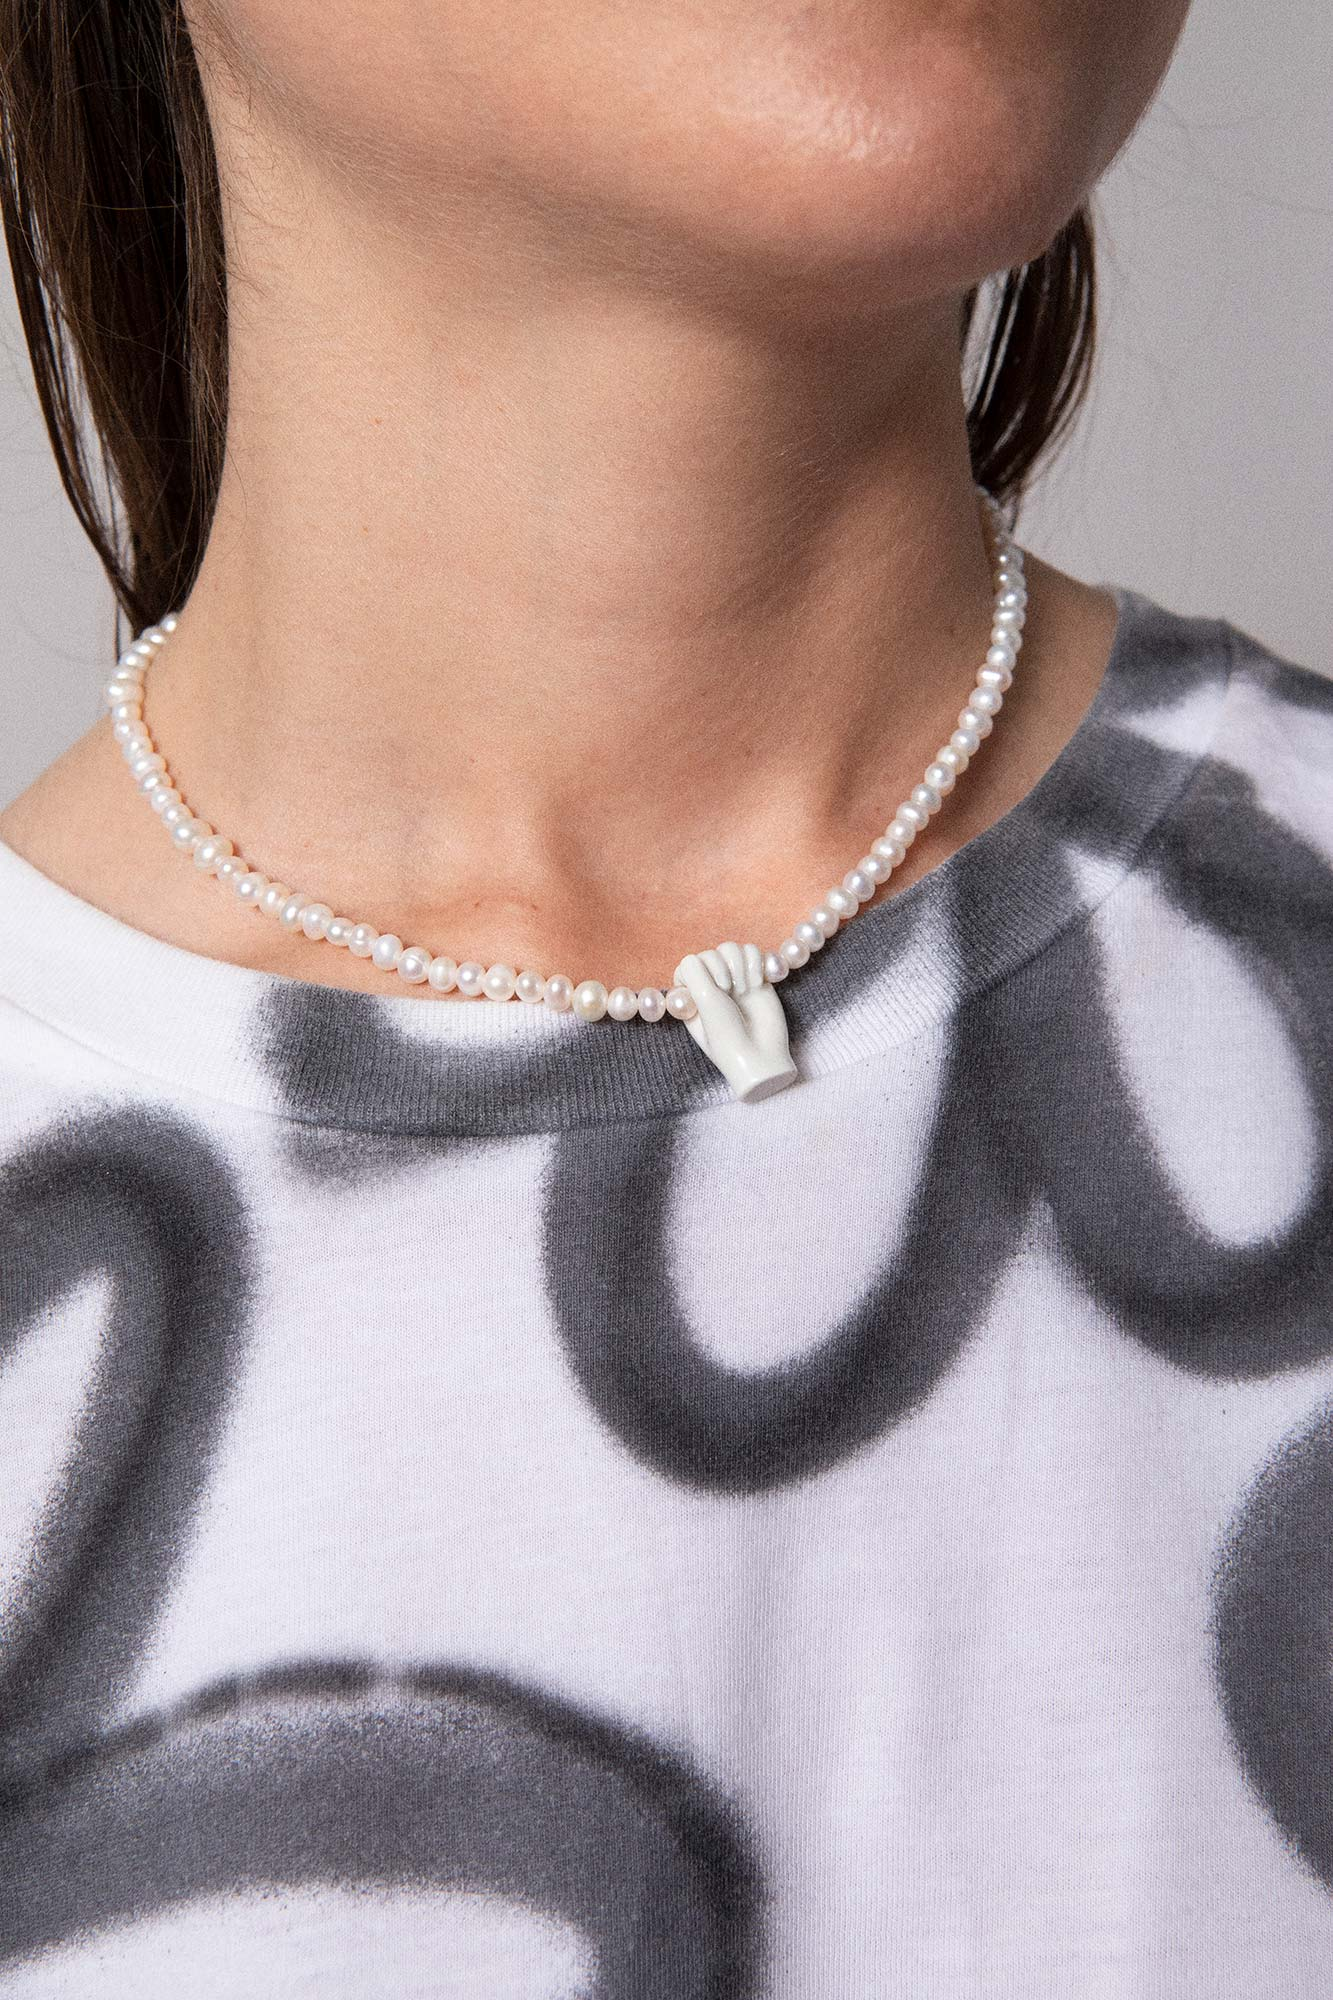 FIST & PEARLS NECKLACE